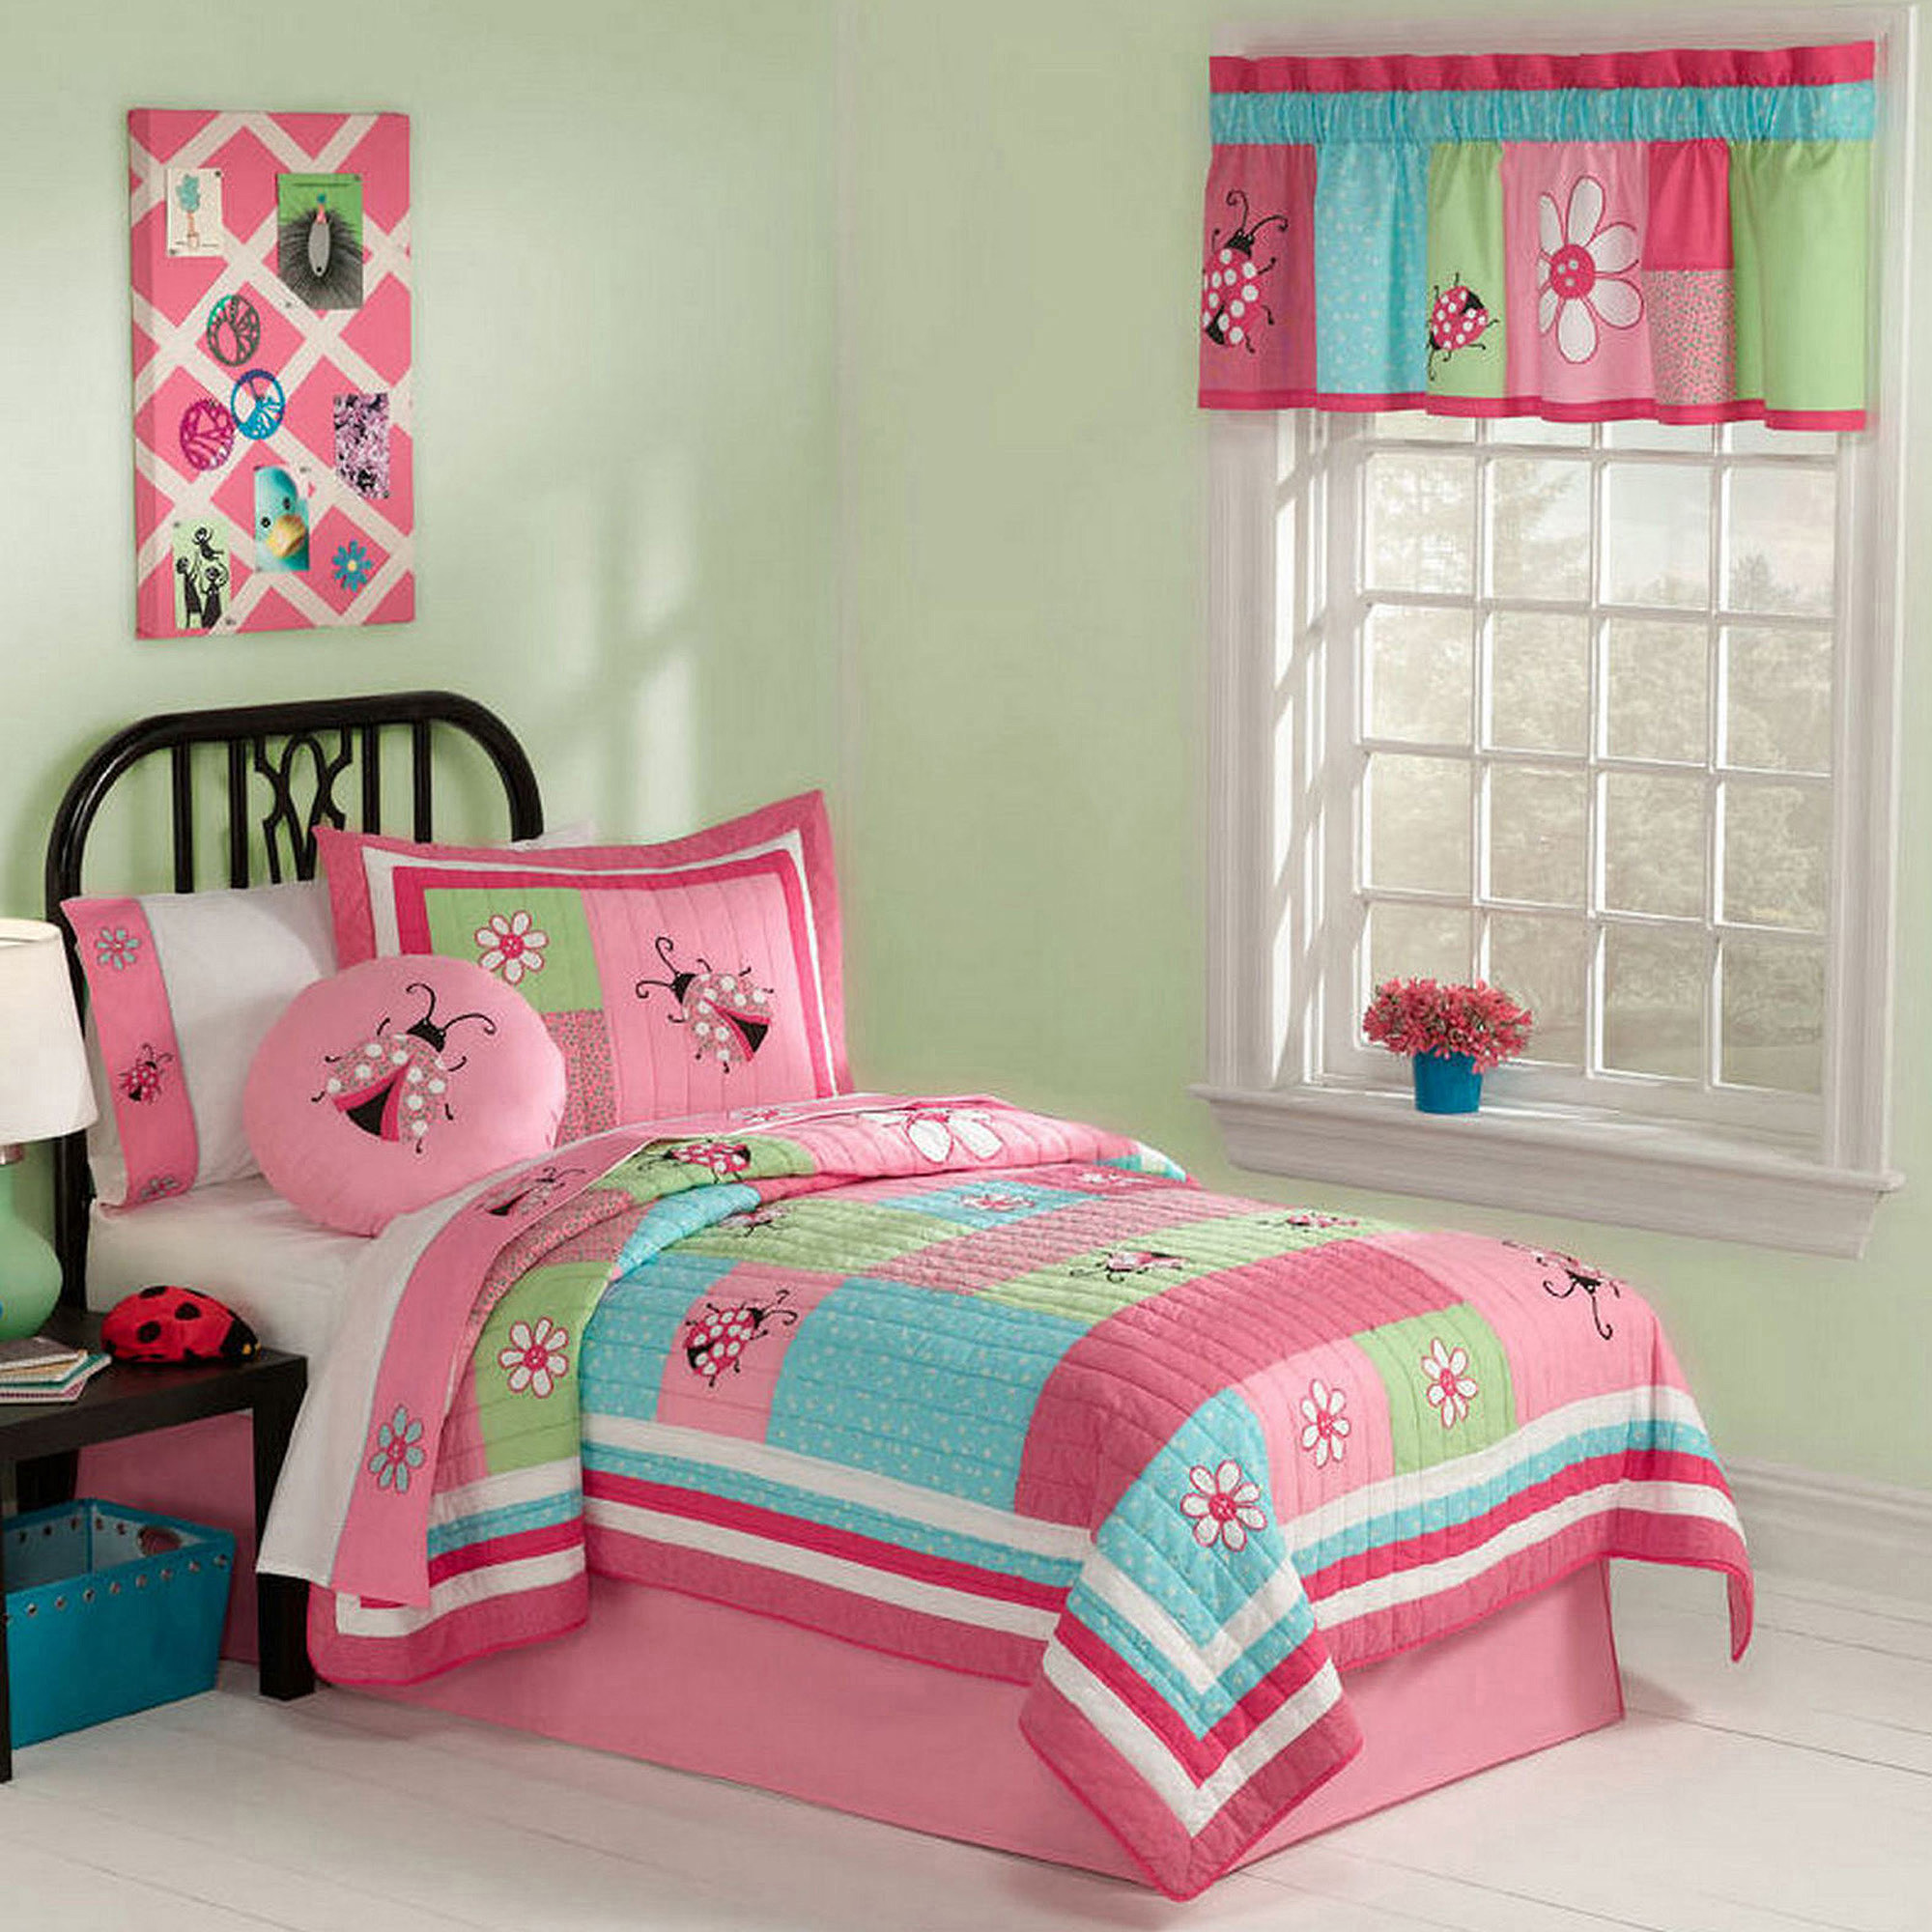 Gardener's Friend Bedding Quilt Set, Pink